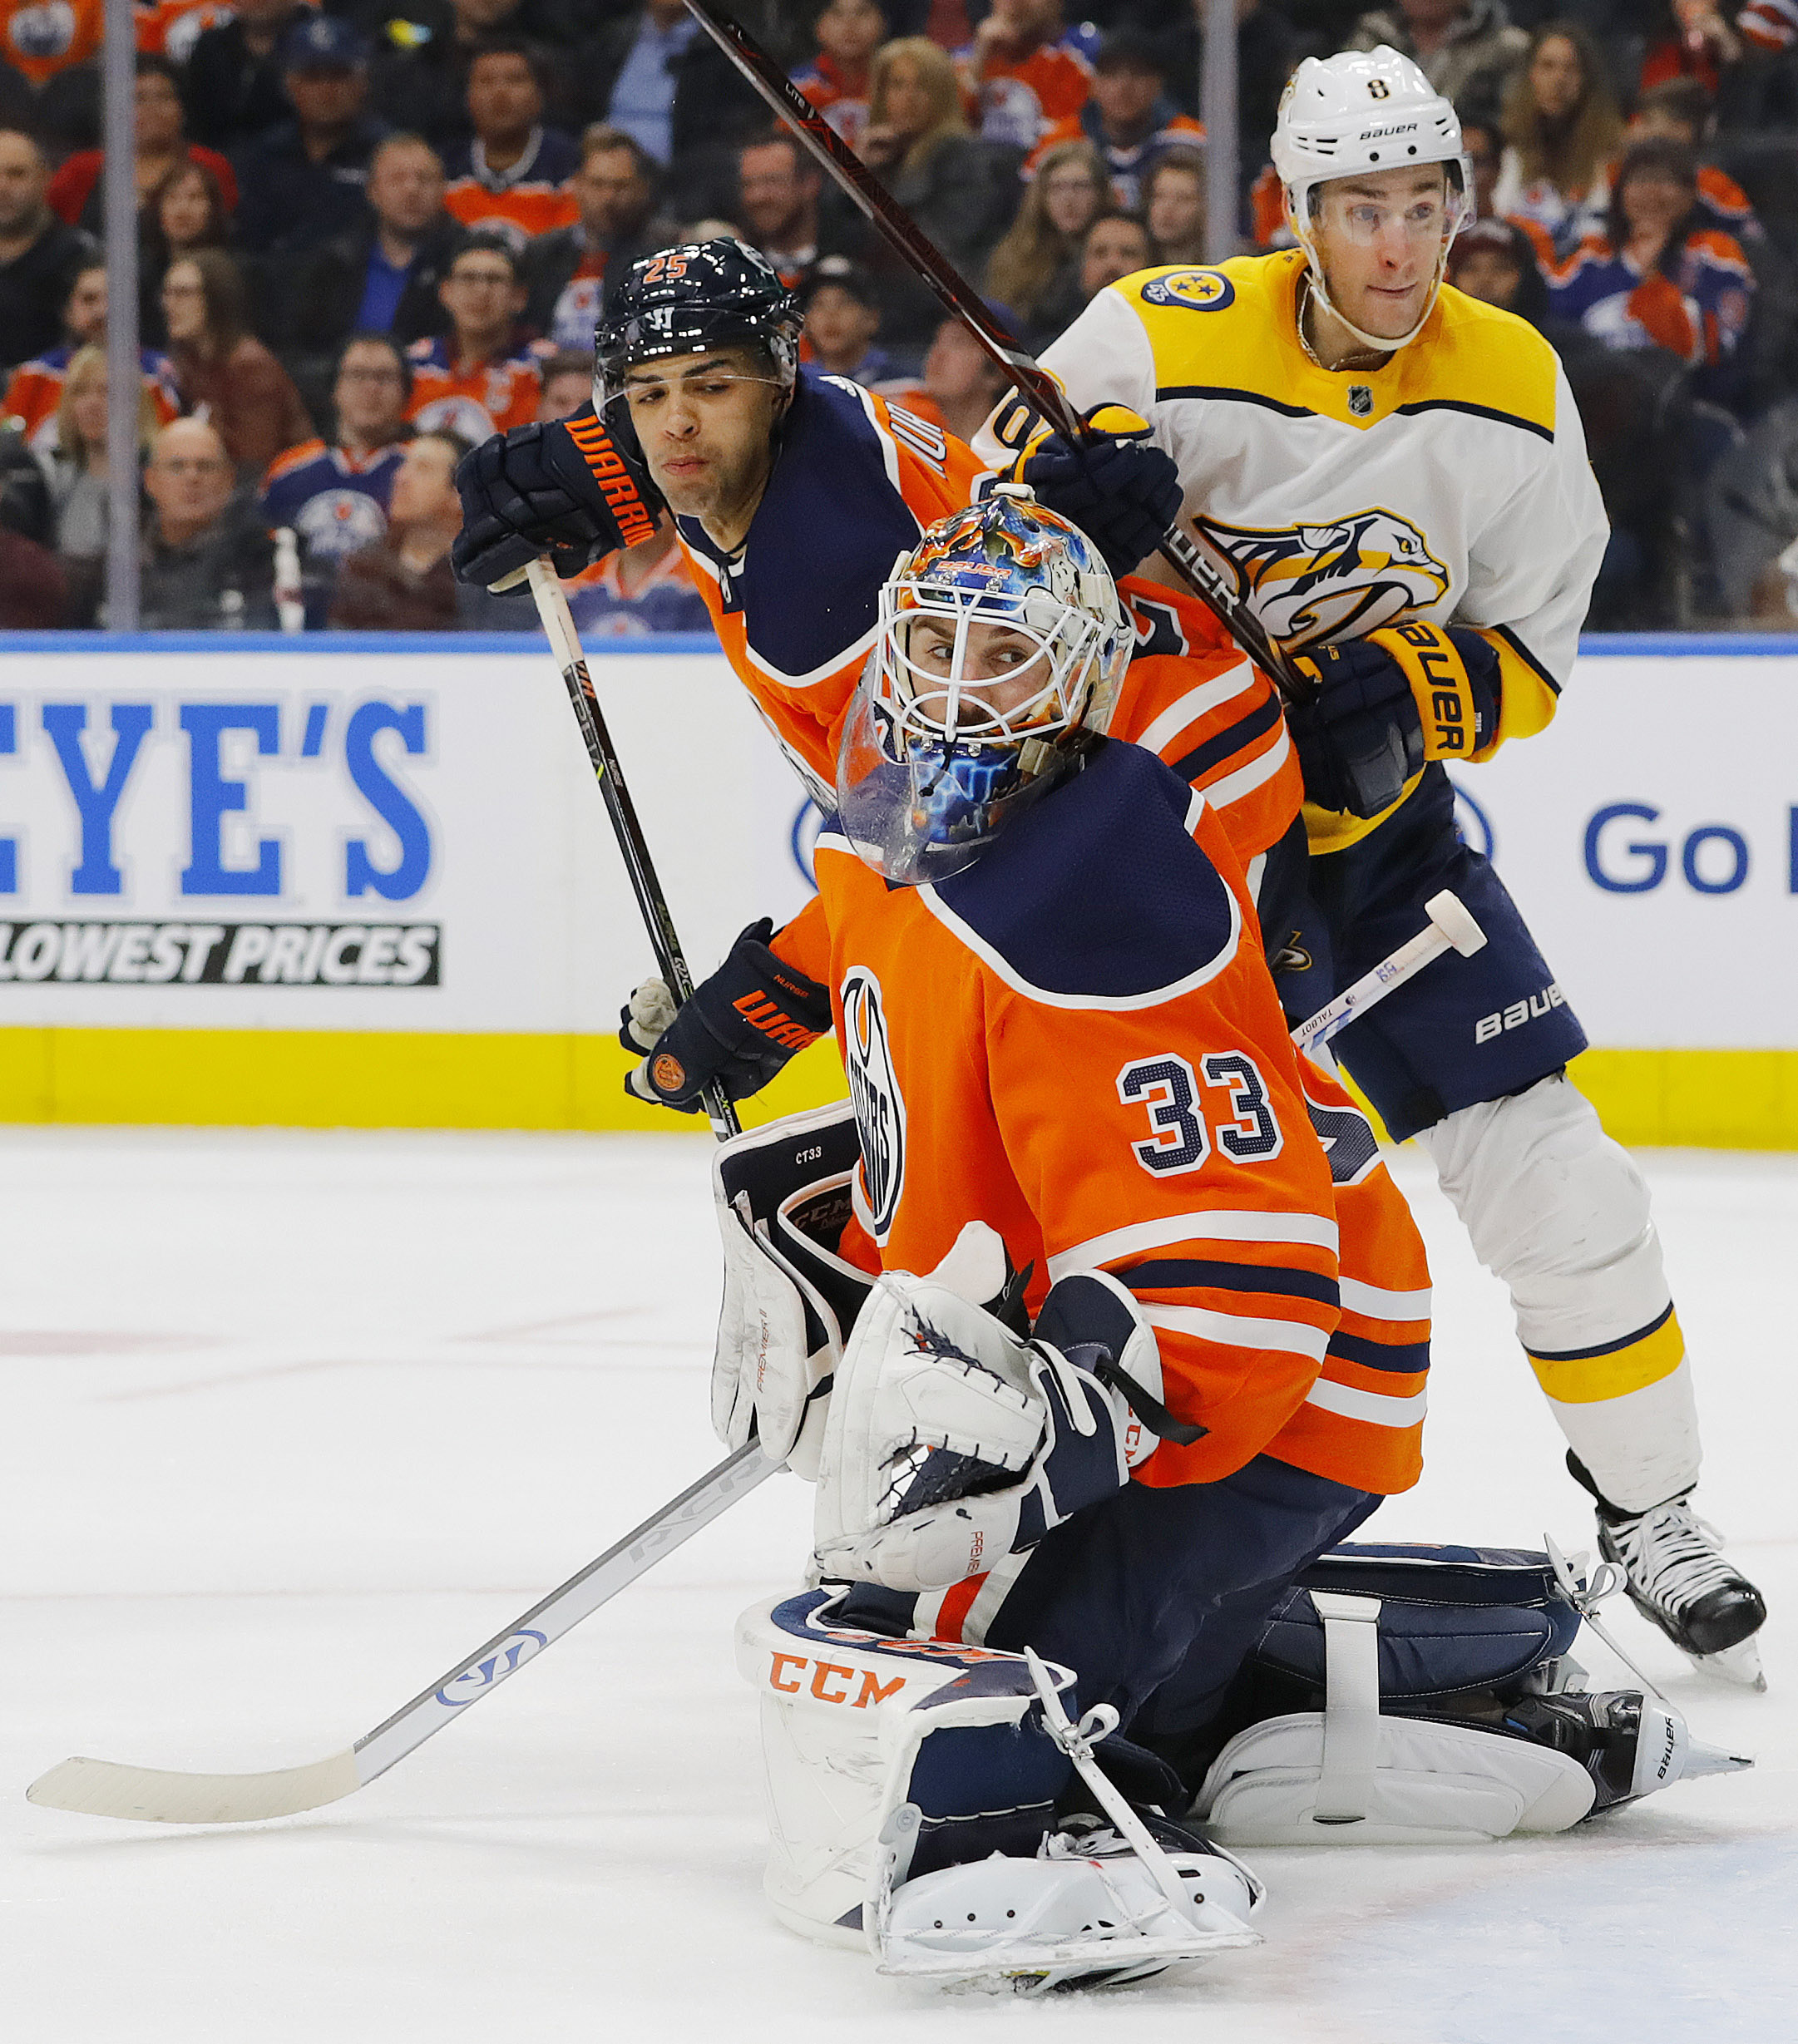 a4950f5504c The team has many decisions to make with their goaltending next season. All  three goaltenders are on one-year deals and will have to prove their value  to ...